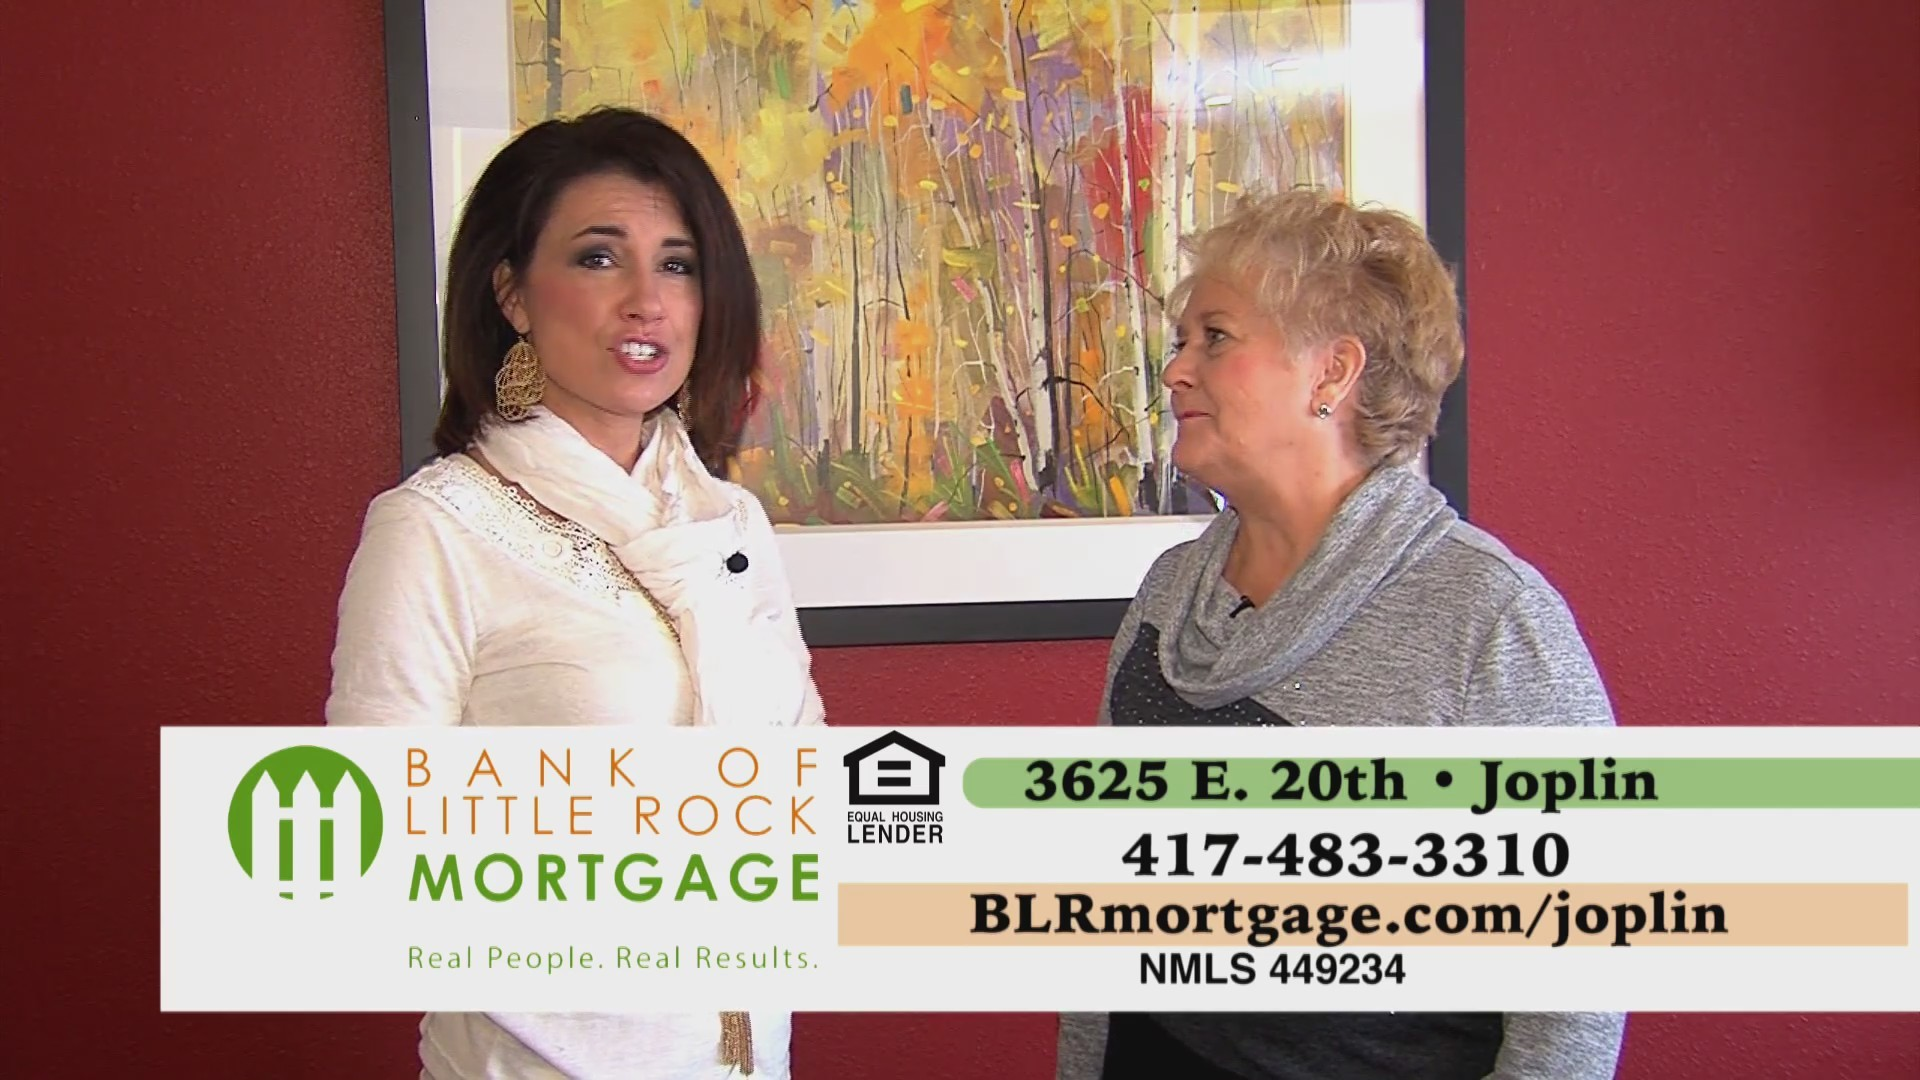 Bank of Little Rock Mortgage - January 2017 (122618)